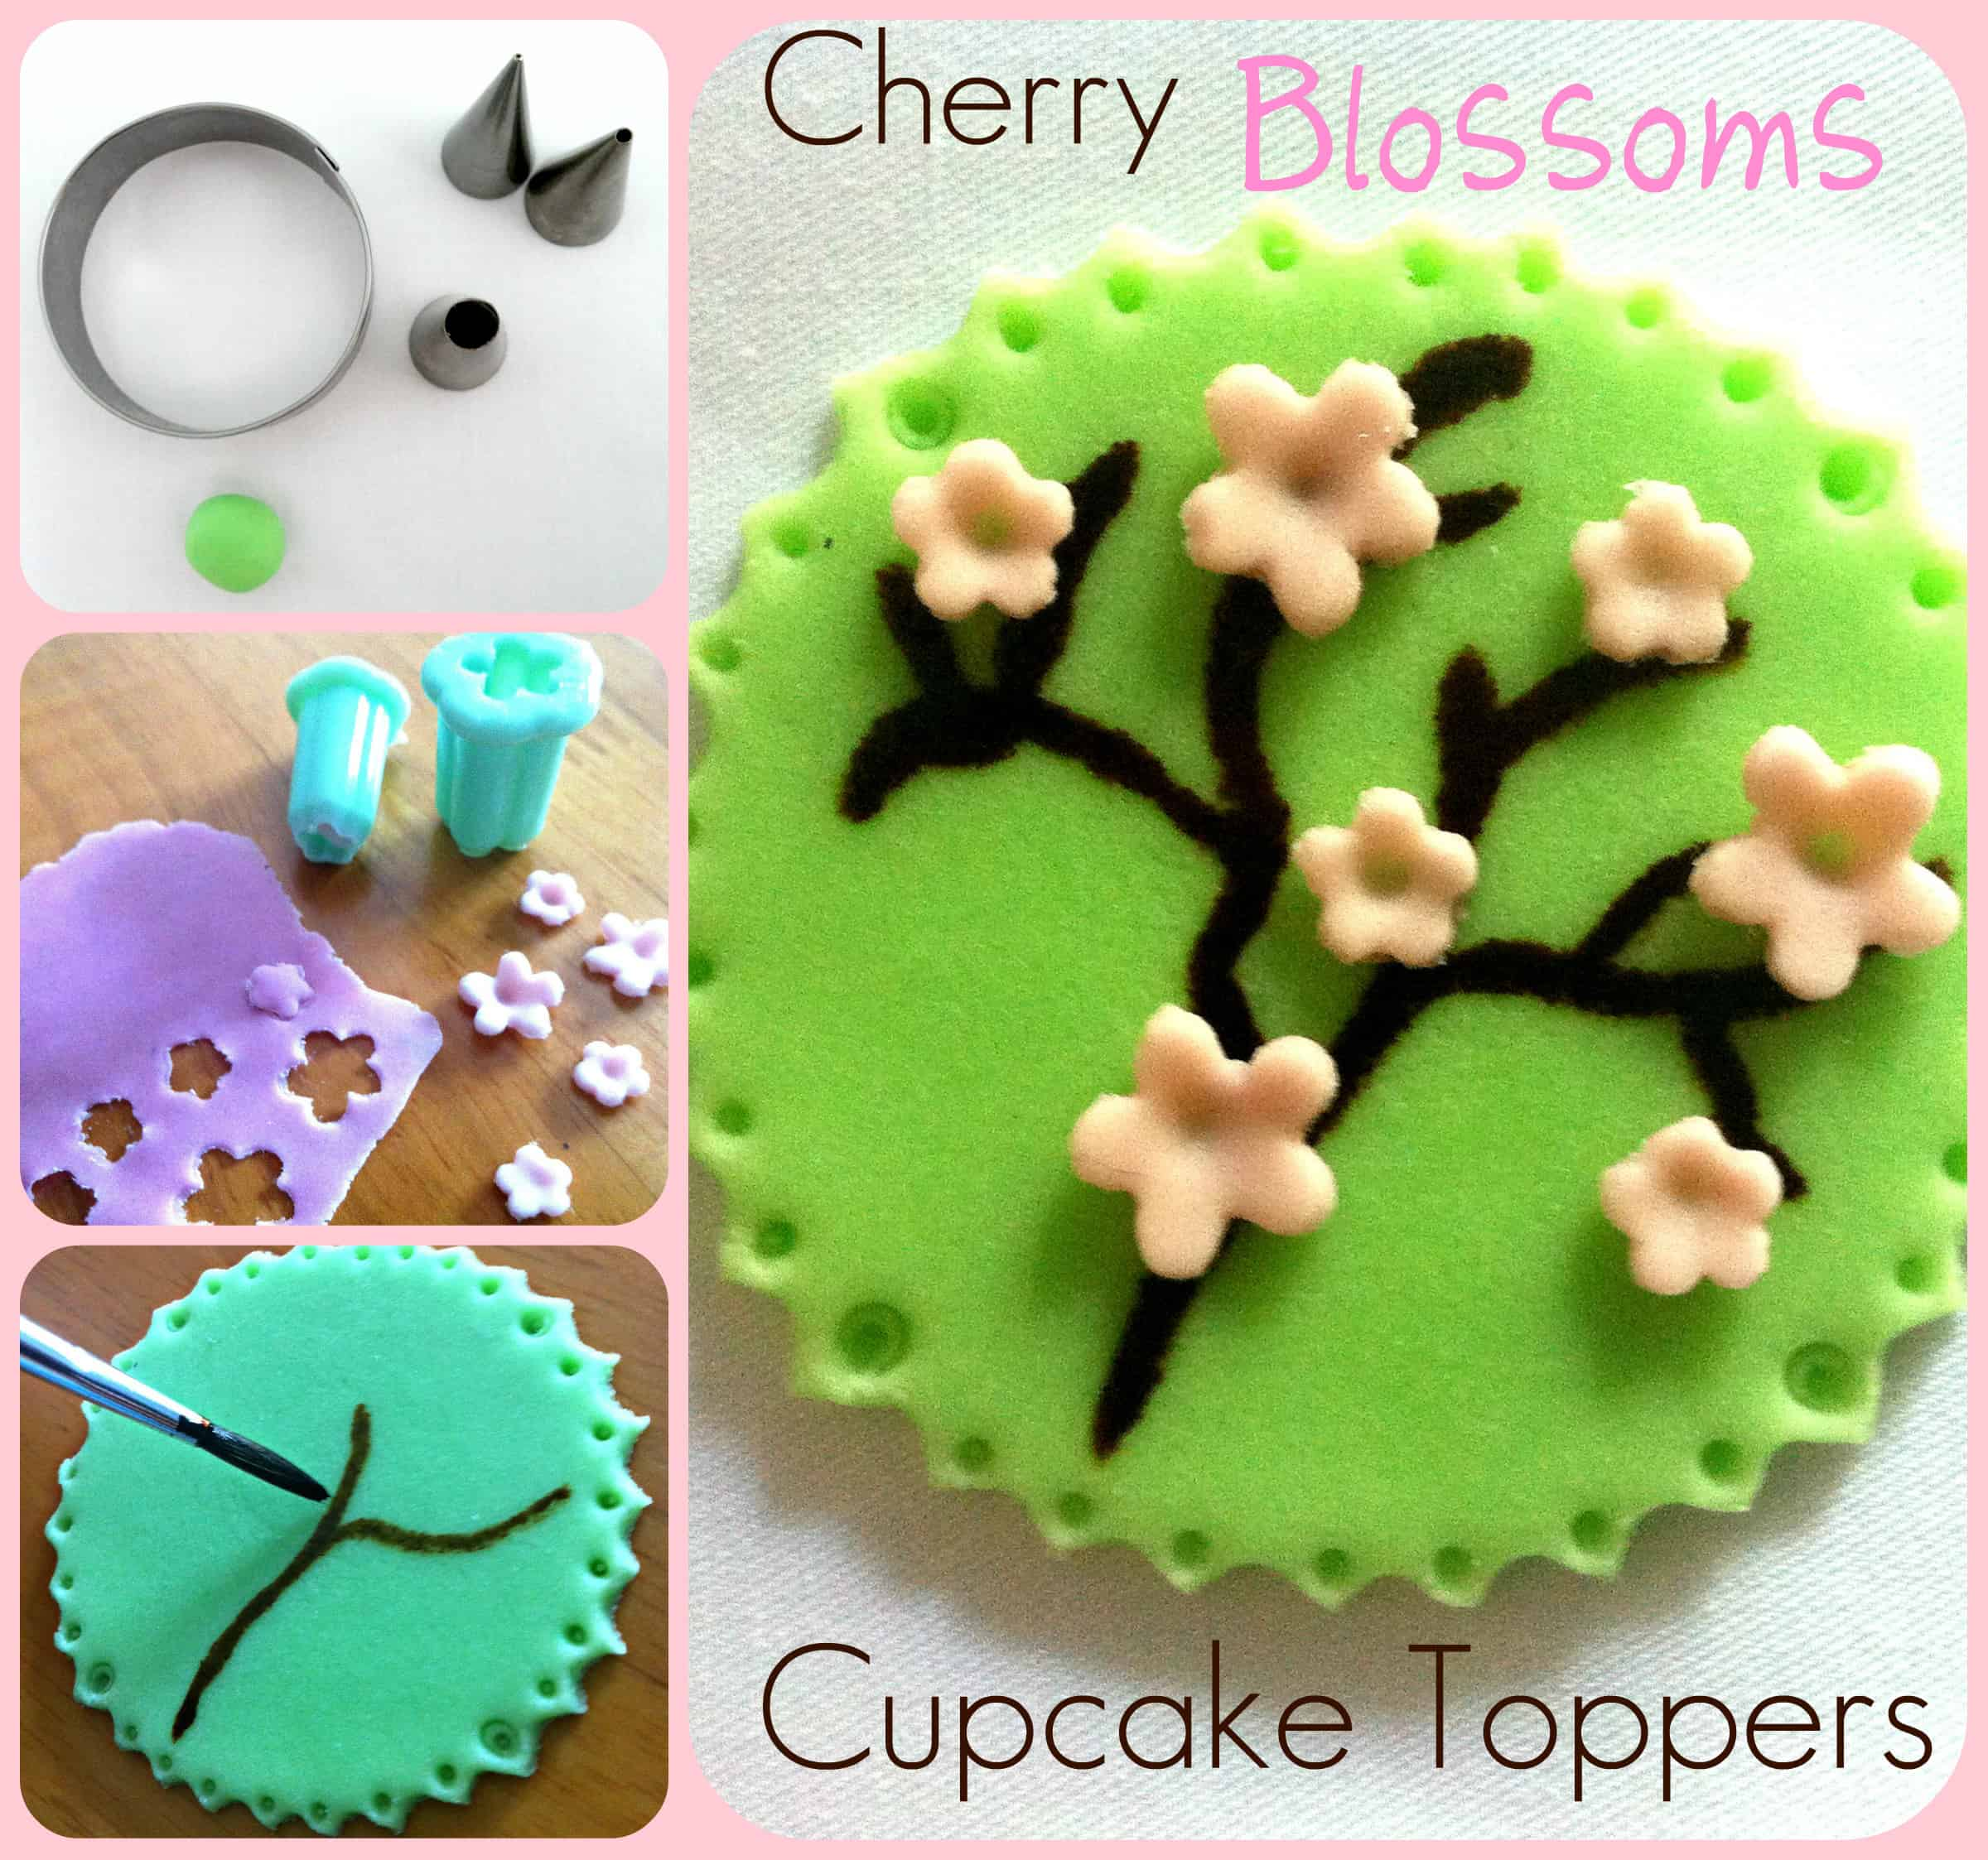 Cherry Blossoms Cupcake Toppers